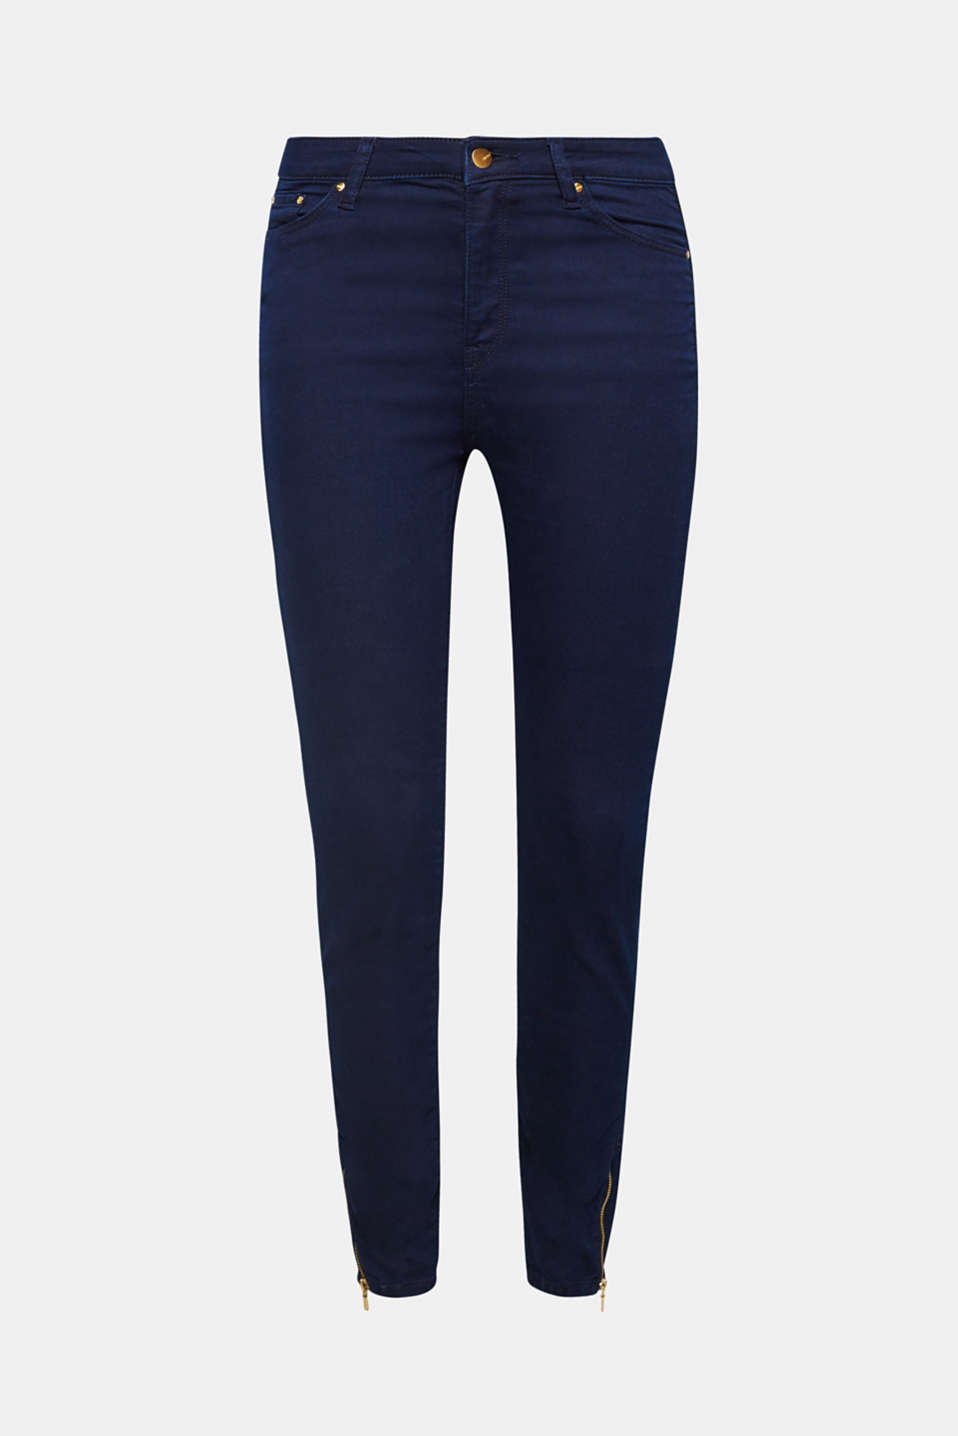 These coloured stretch jeans finished with gold-coloured studs and side hem zips fit perfectly, are mega comfy and place great emphasis on exquisite details!